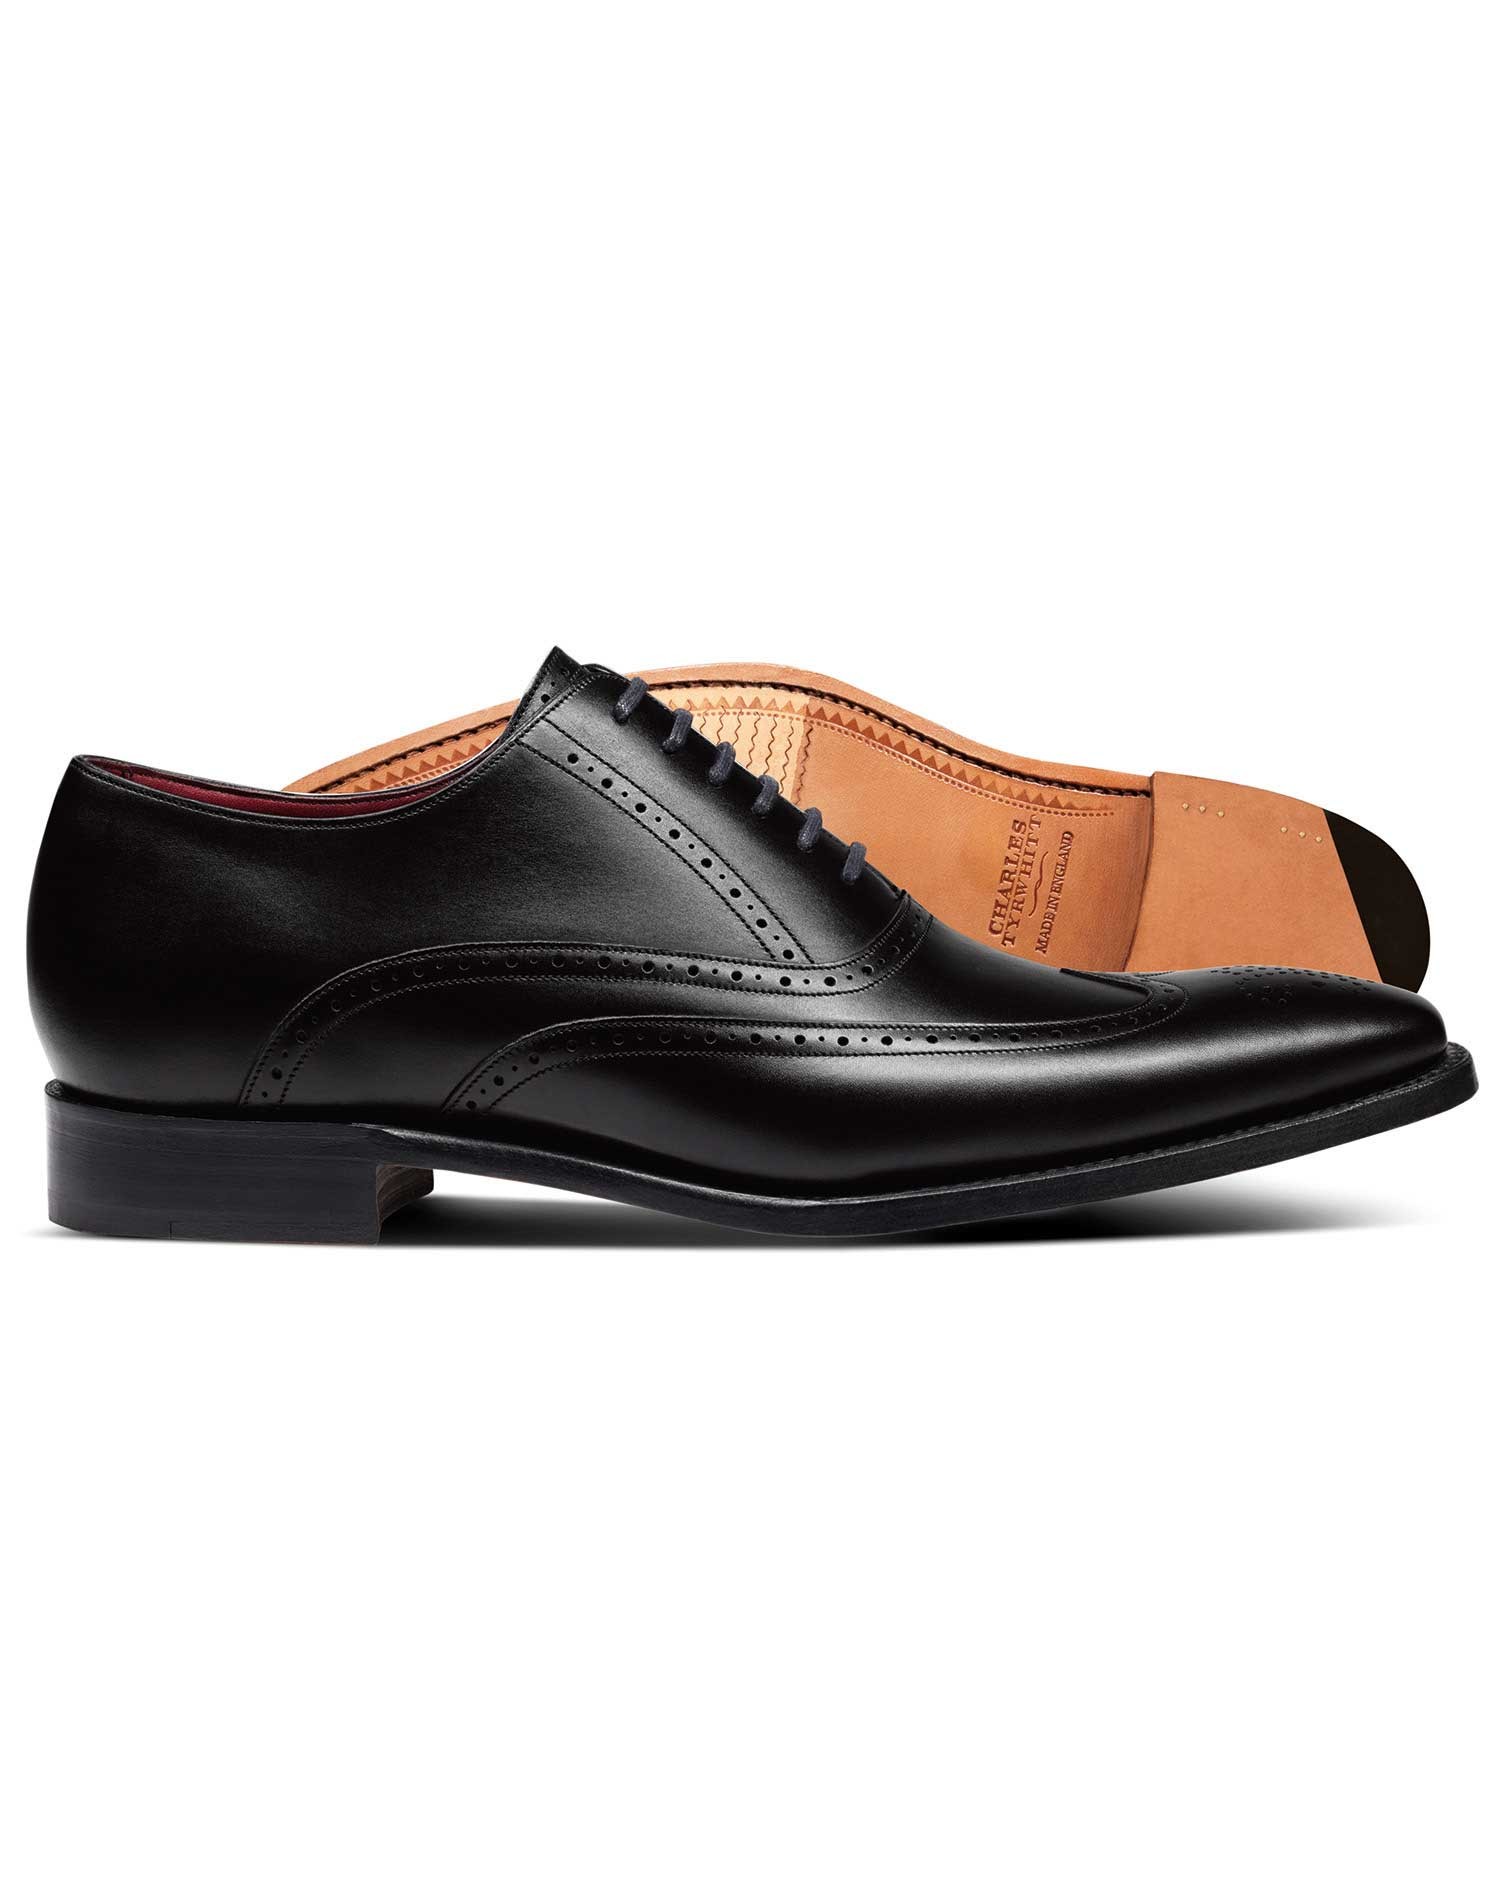 8261f9eee2e Black made in England Oxford brogue flex sole shoes